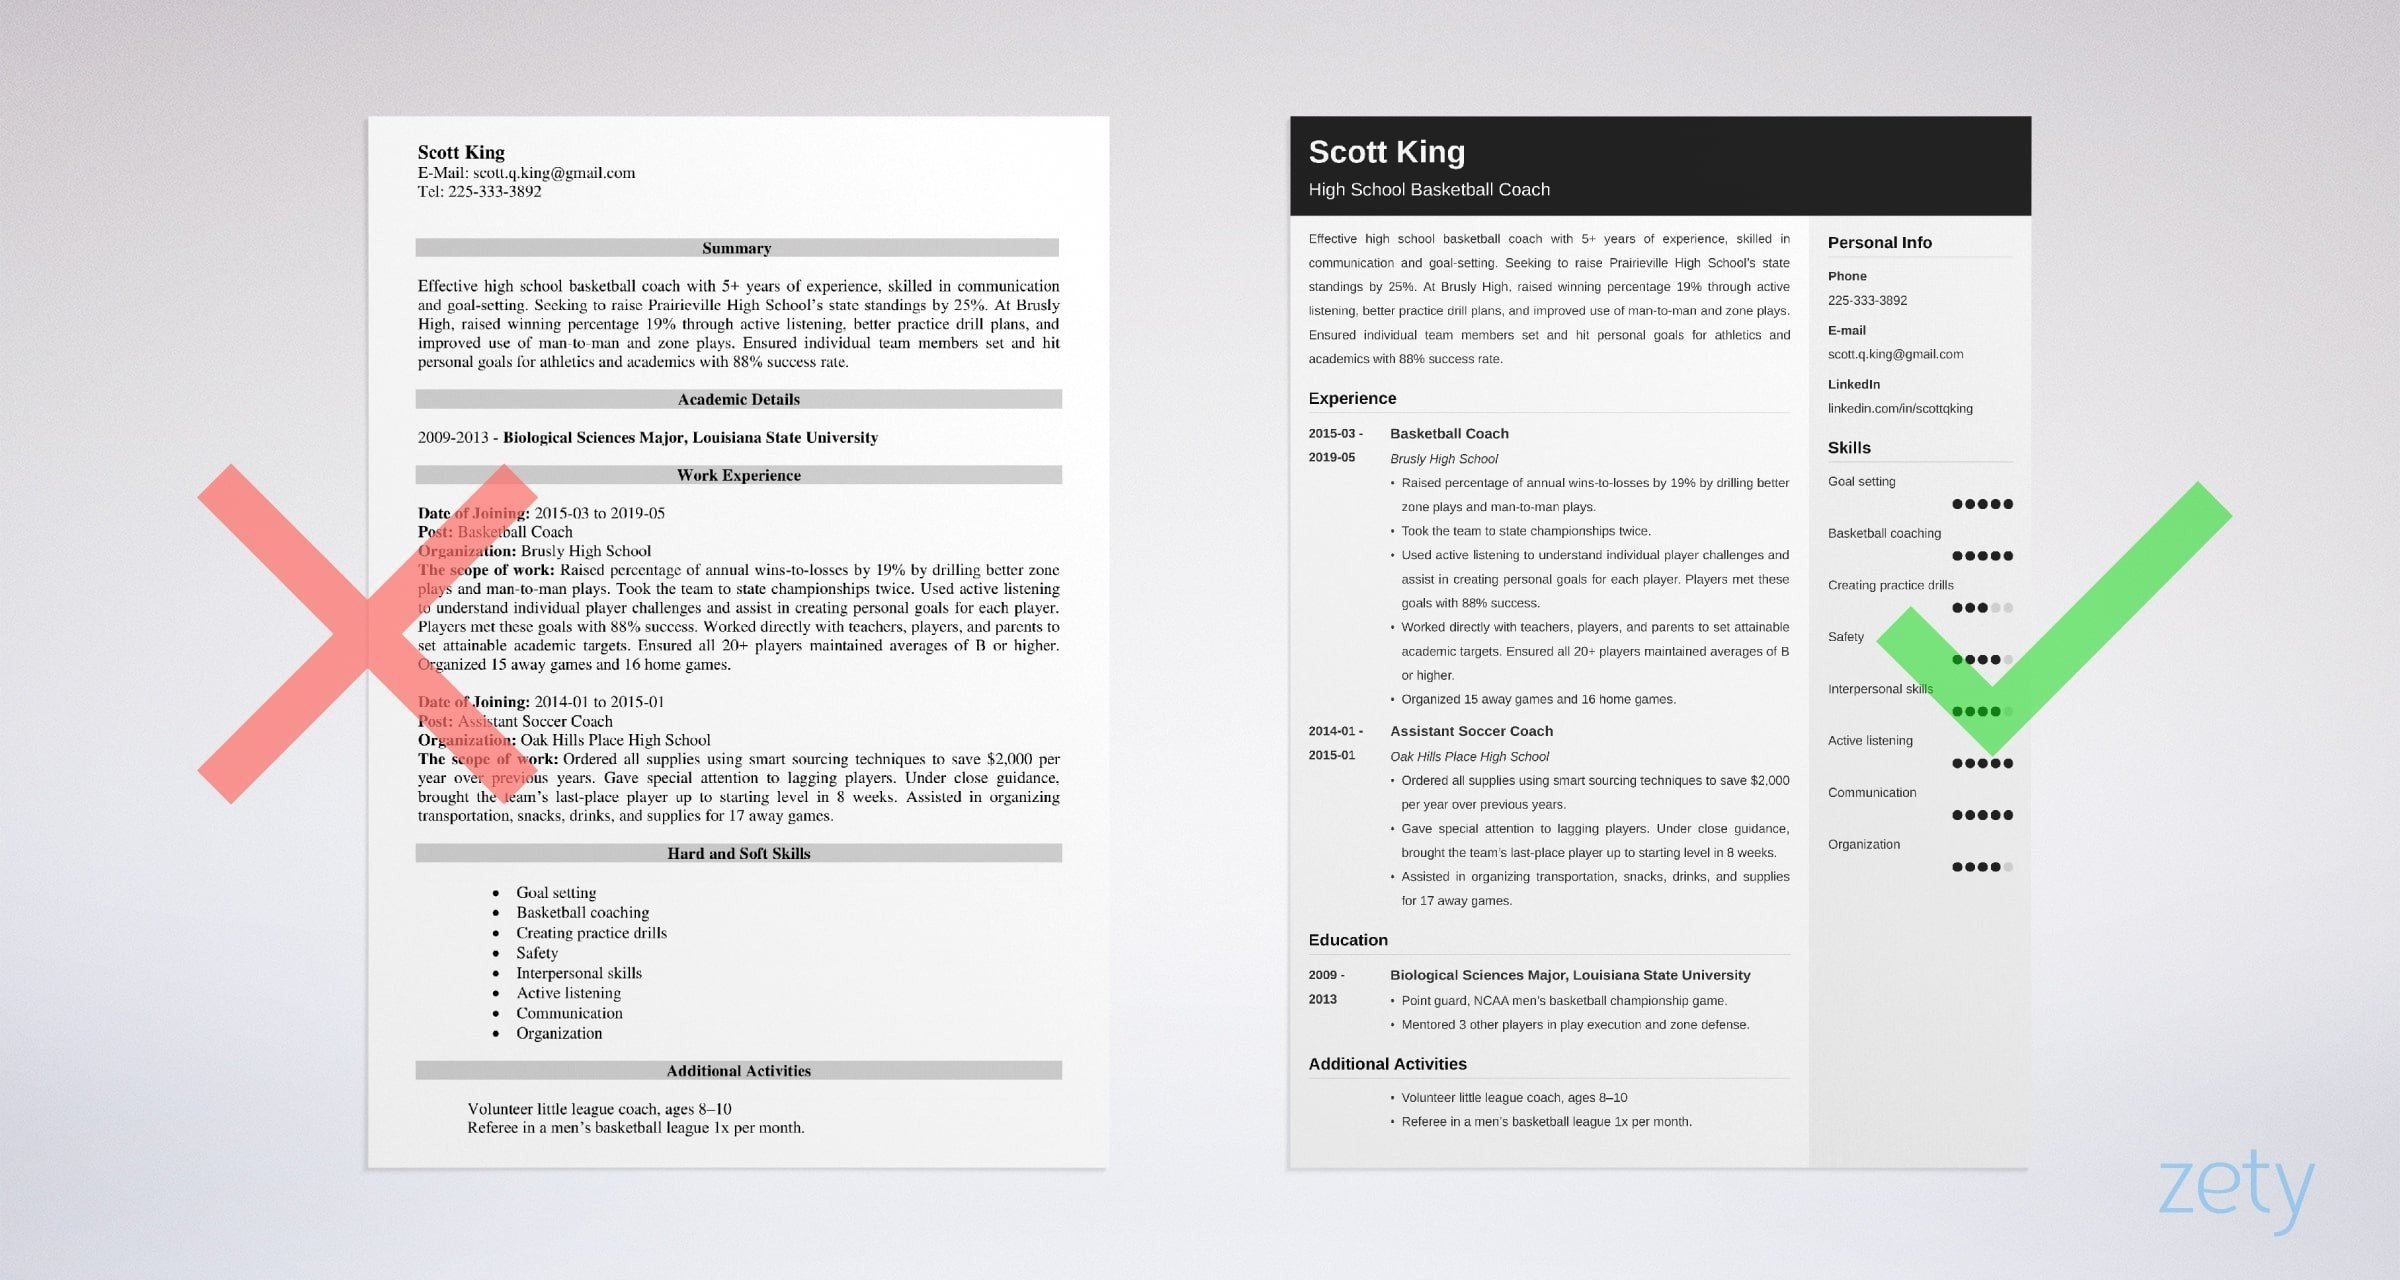 coaching resume samples also for high school coach jobs professional basketball player Resume Professional Basketball Player Resume Examples